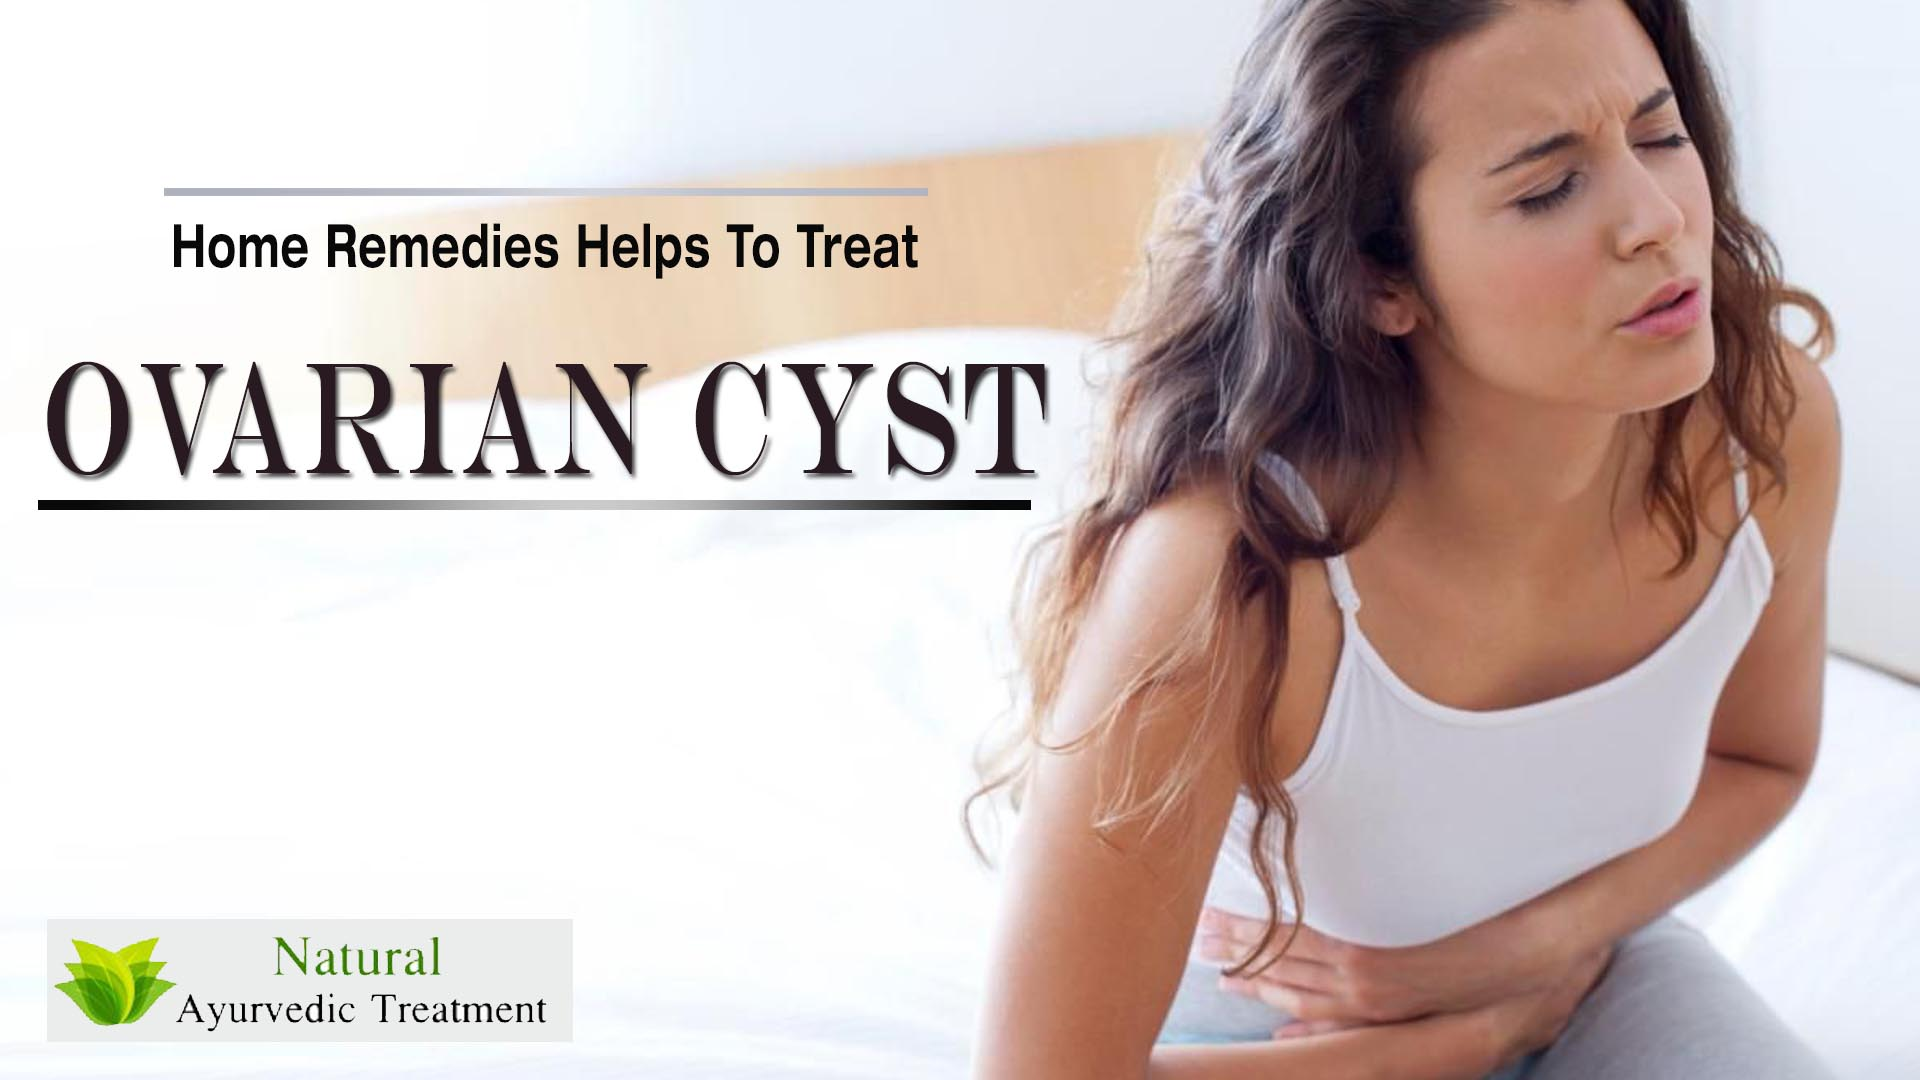 Is Home Remedies Helps To Treat Ovarian Cyst?